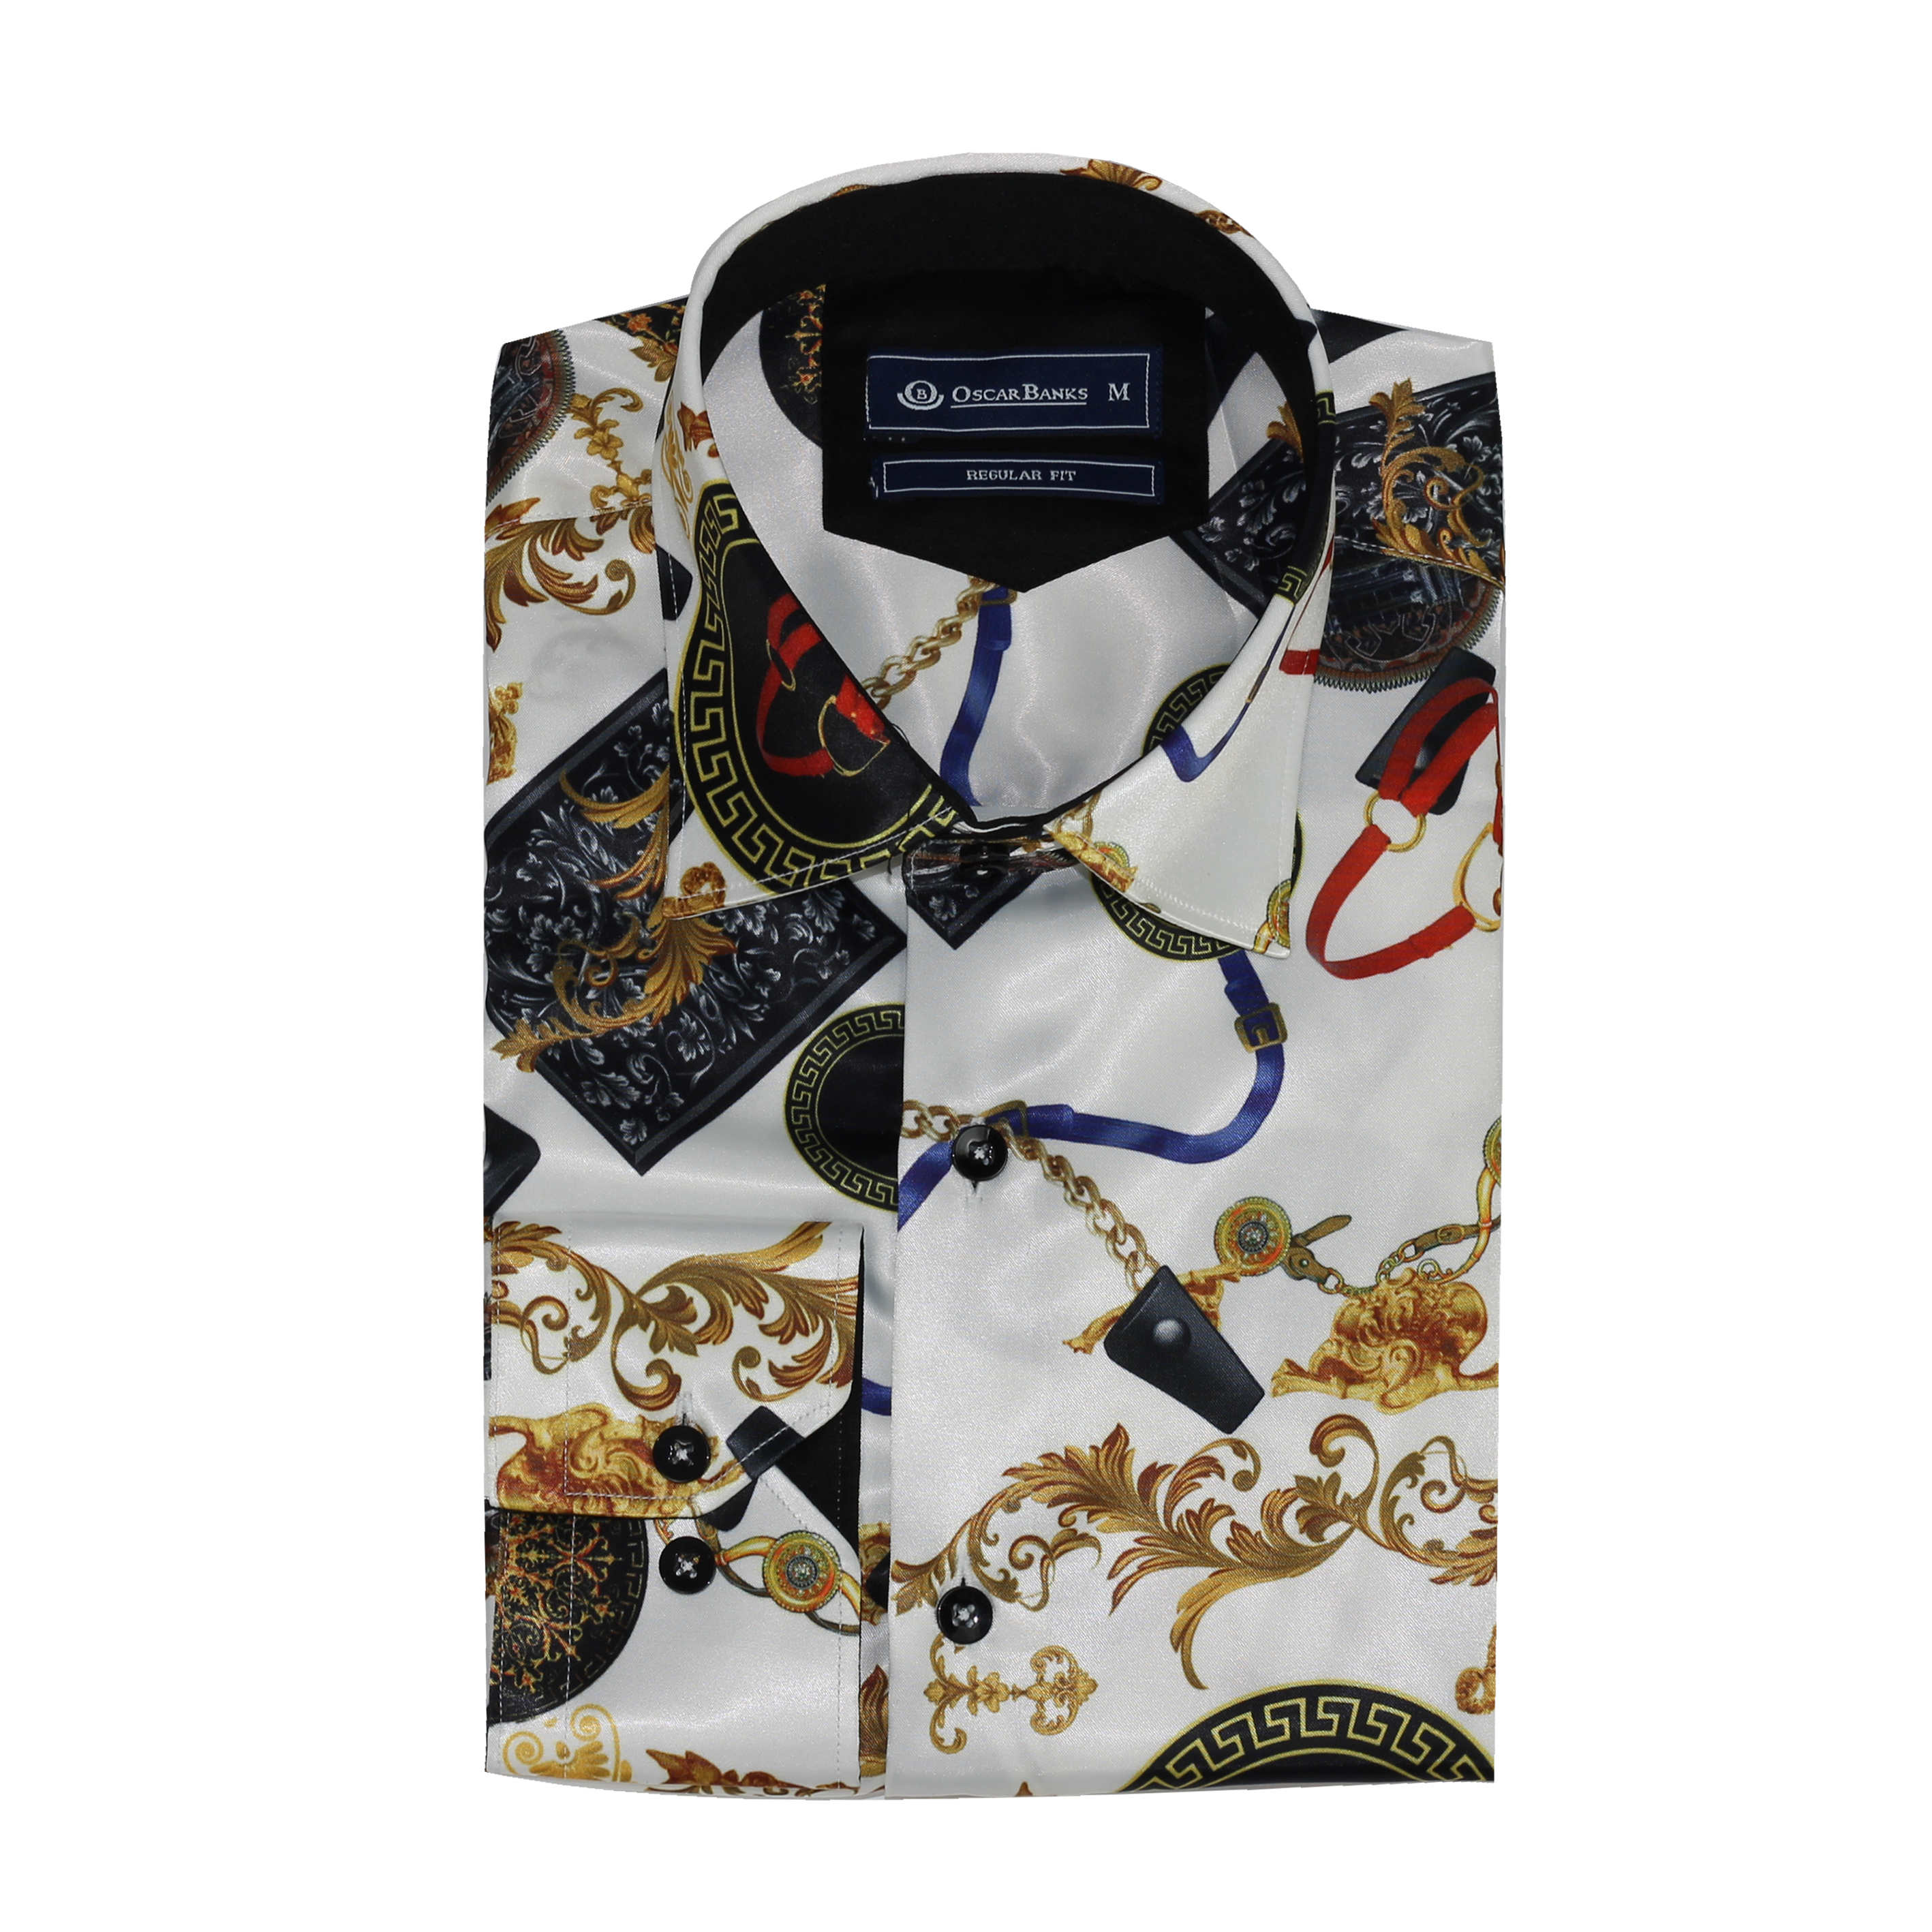 ed1fb7dd75a Details about New Mens Oscar Bank Gold White Designer Style Satin Feel  Print Smart Dress Shirt